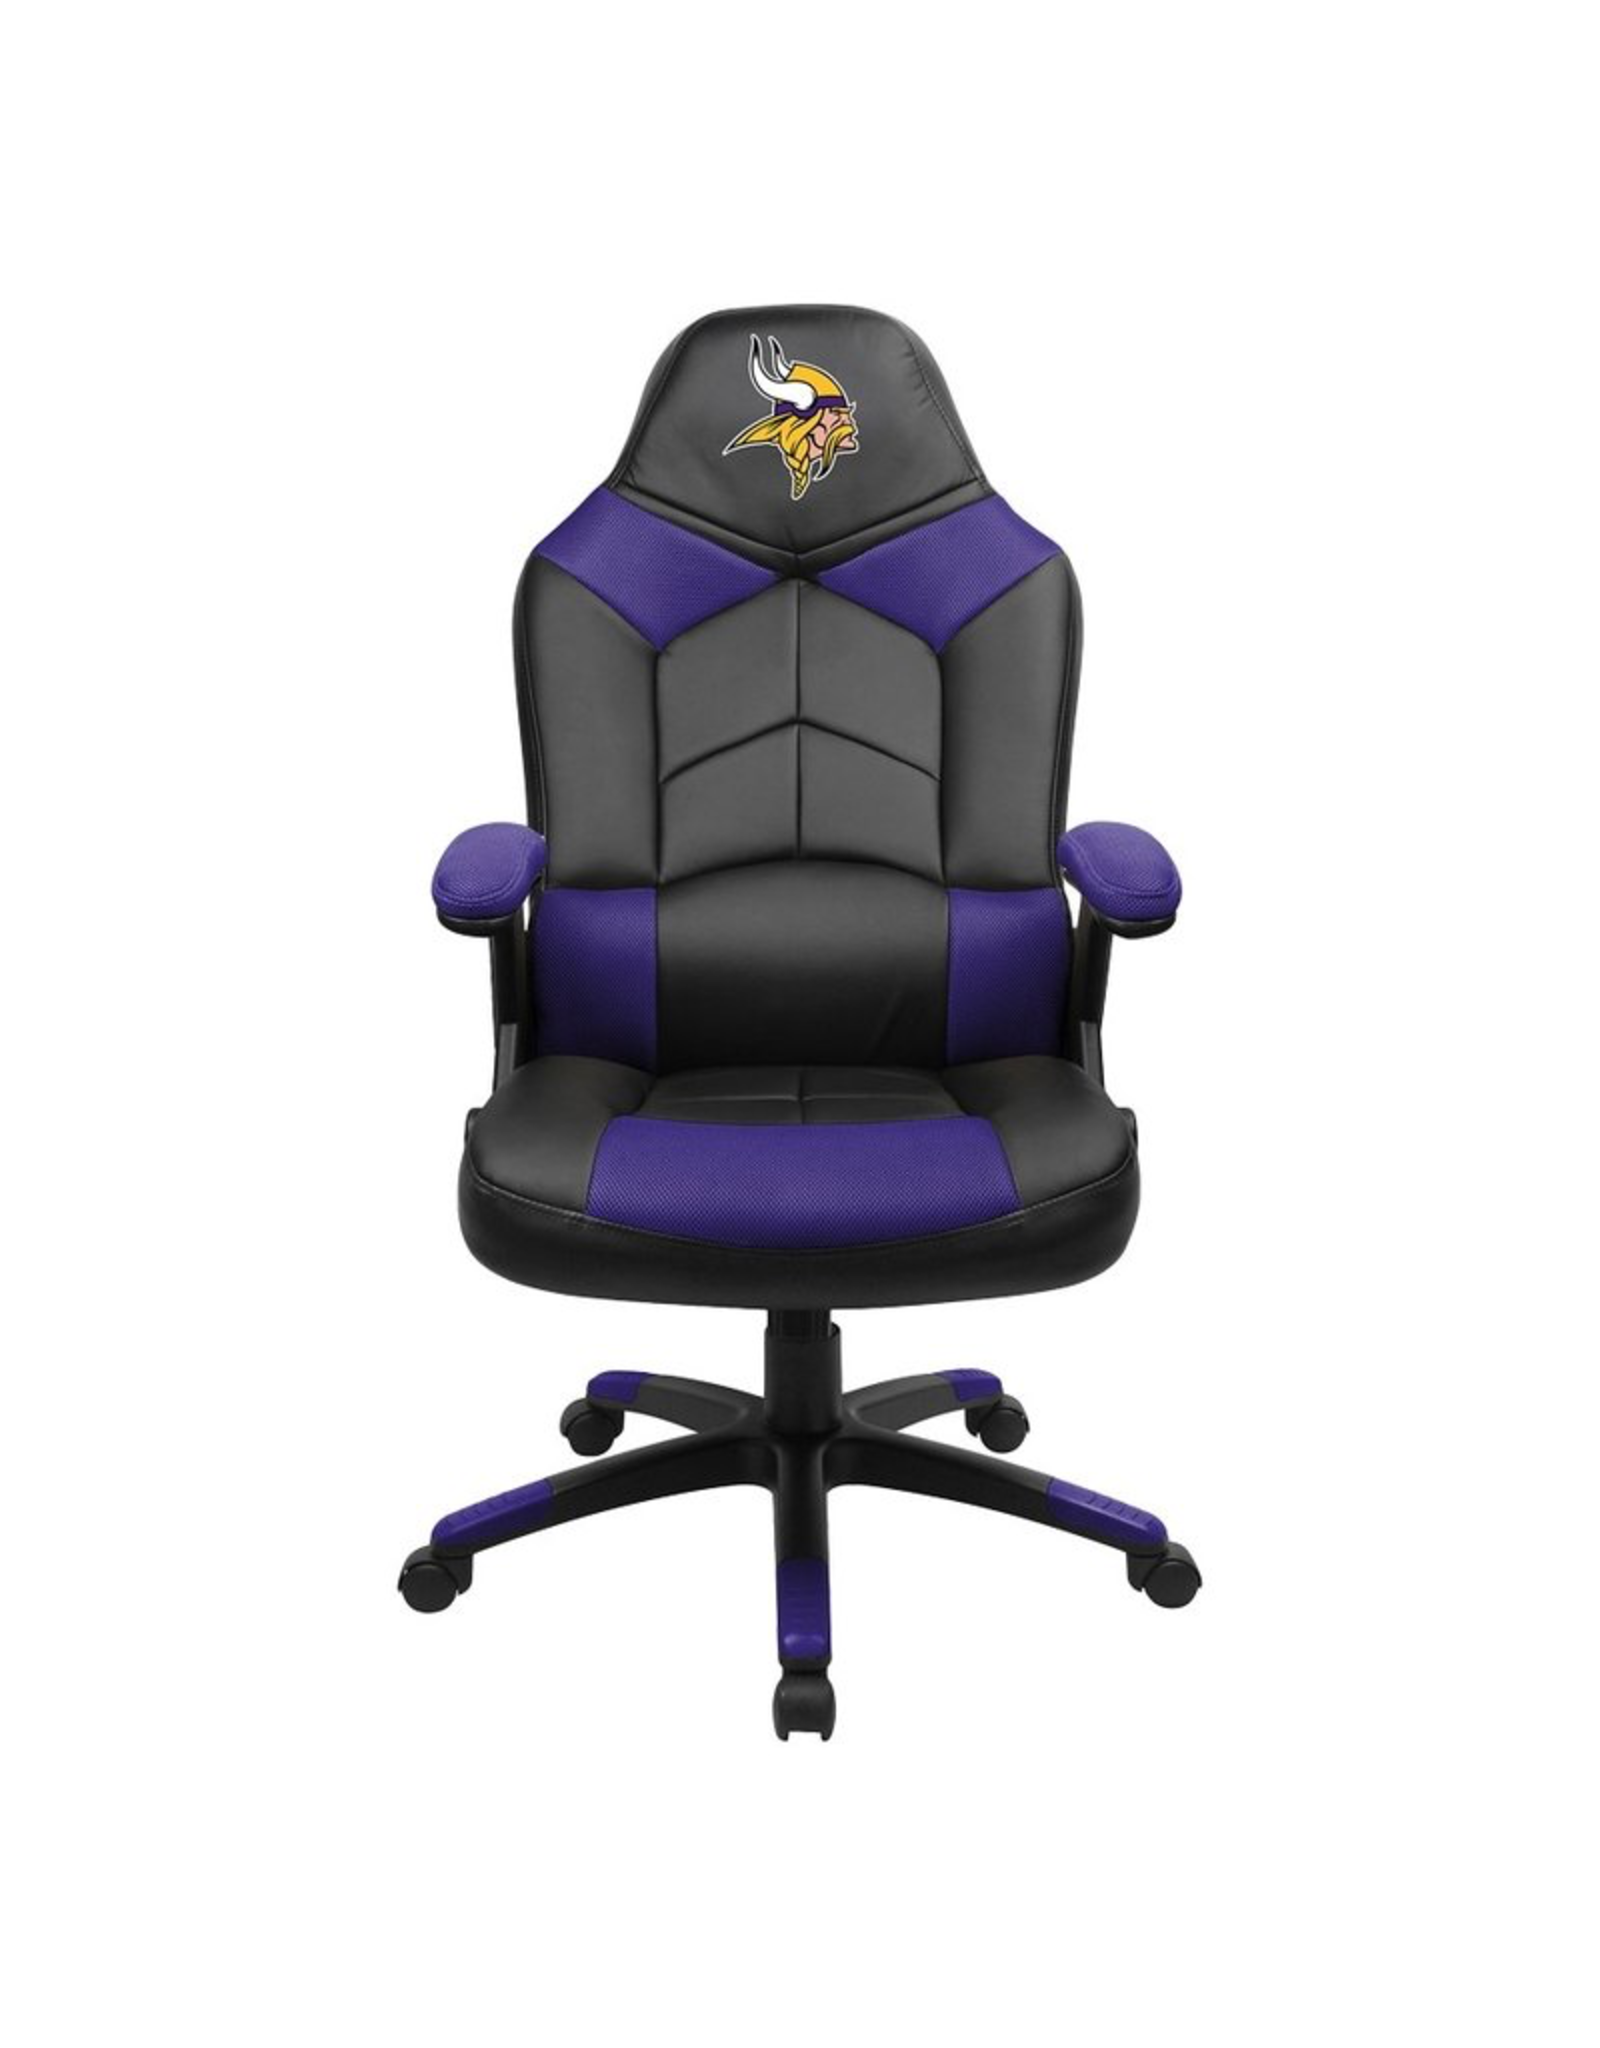 IMPERIAL Minnesota Vikings Oversized Gaming/Office Chair